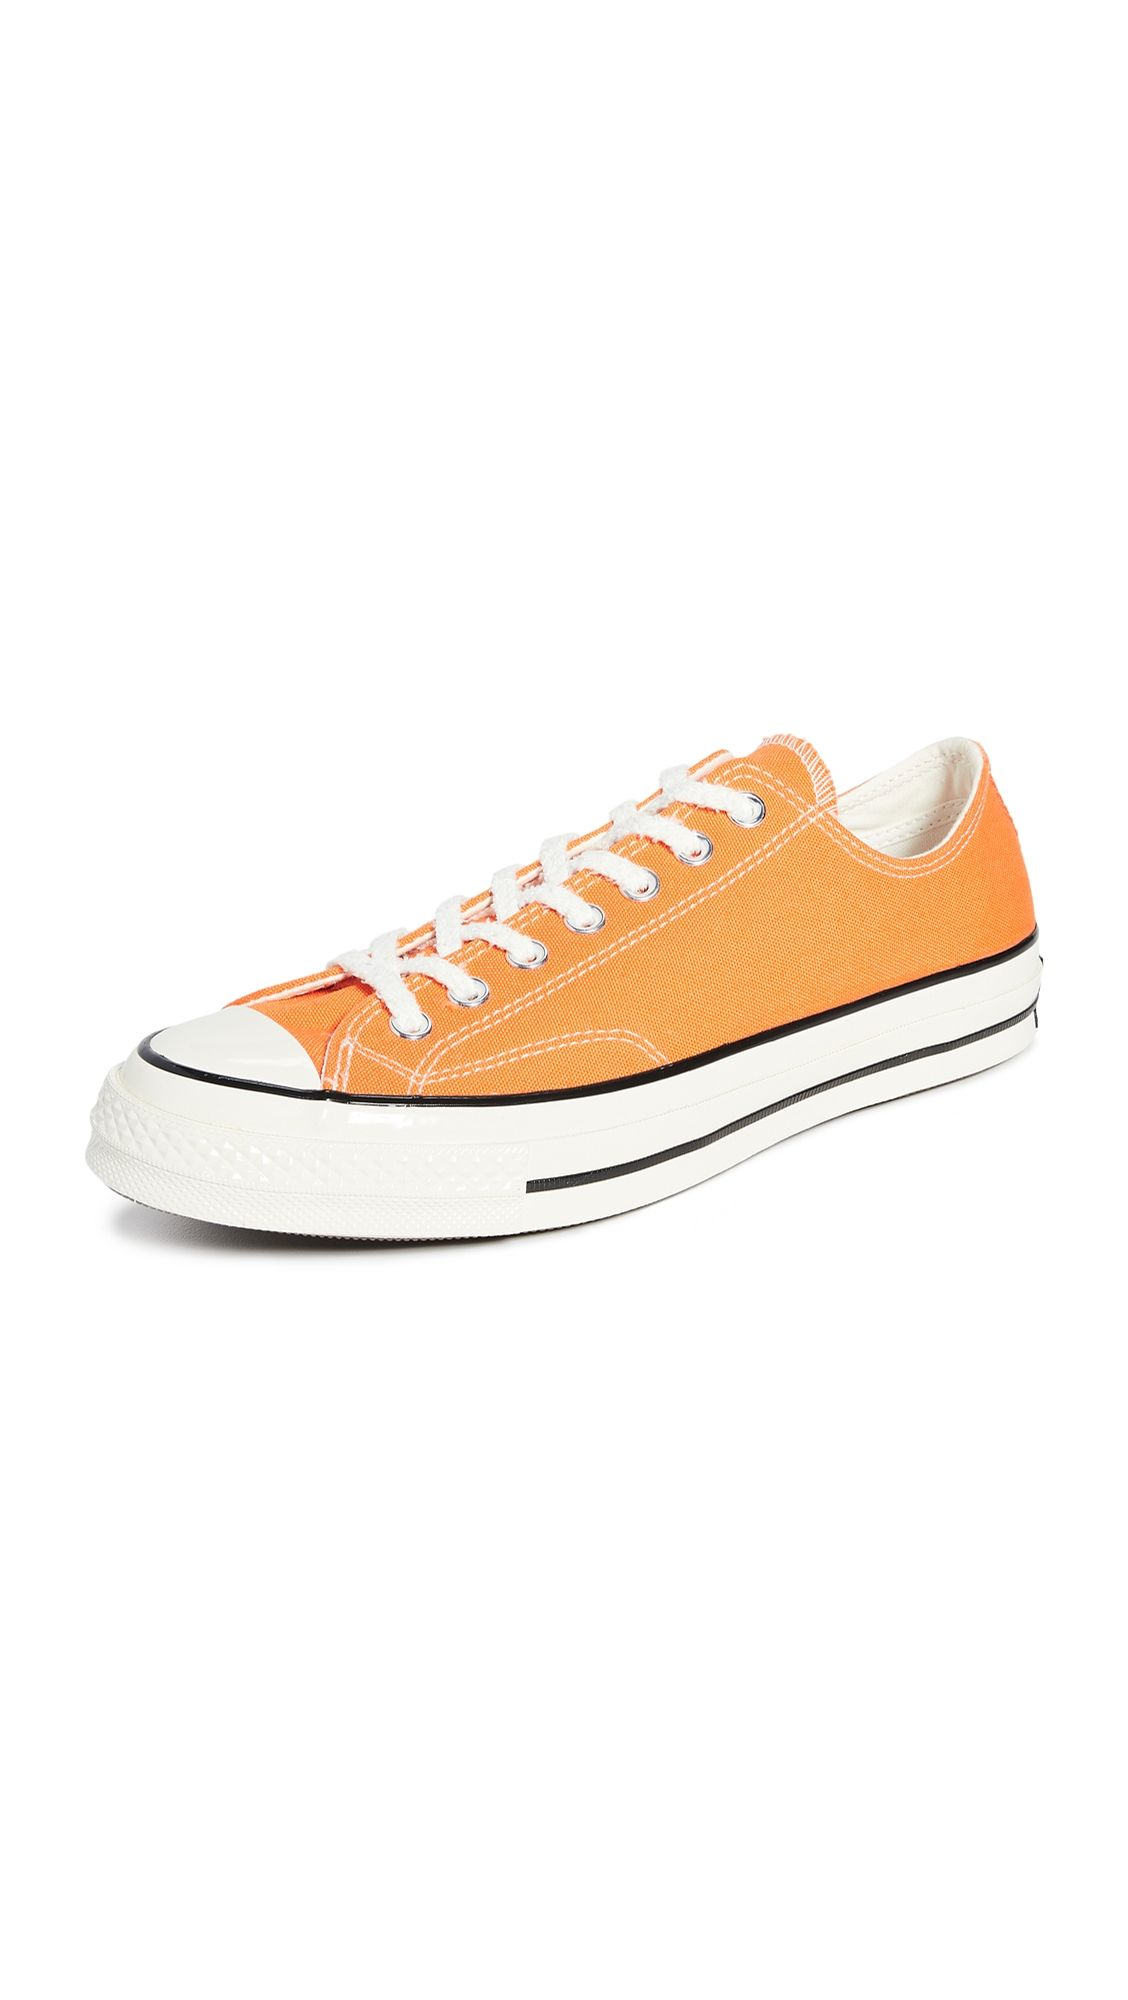 Chuck taylors, Converse, Sneakers